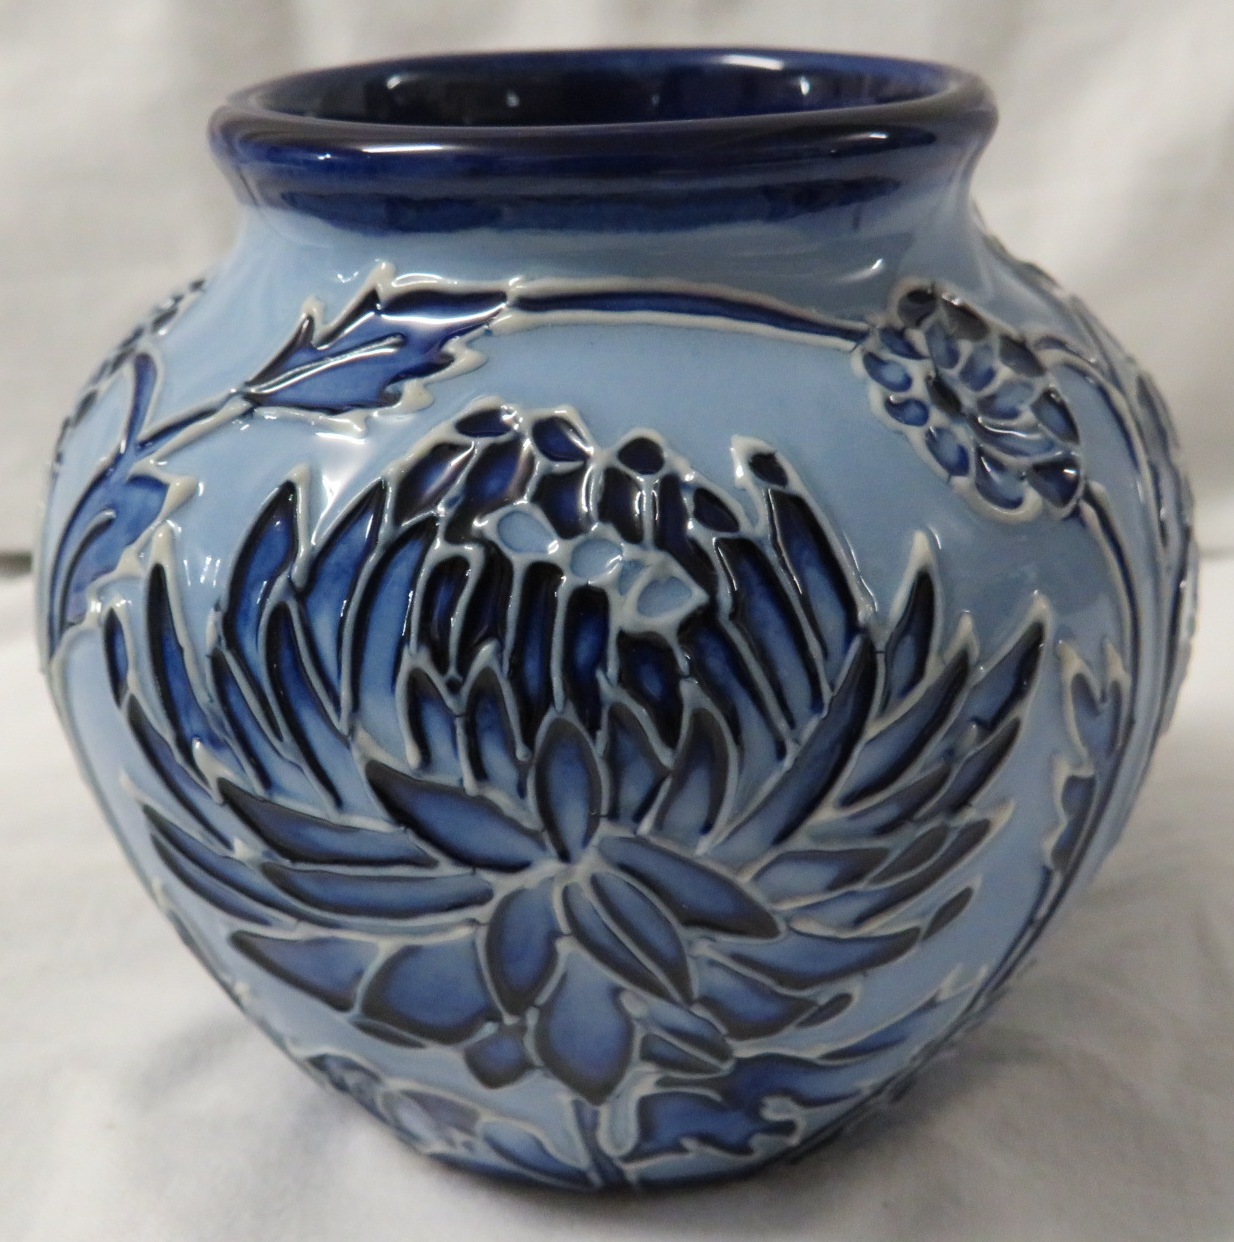 Lot 11 - Moorcroft pottery small ovoid vase in the style of Macintyre Florian ware, pale blue with tube lined